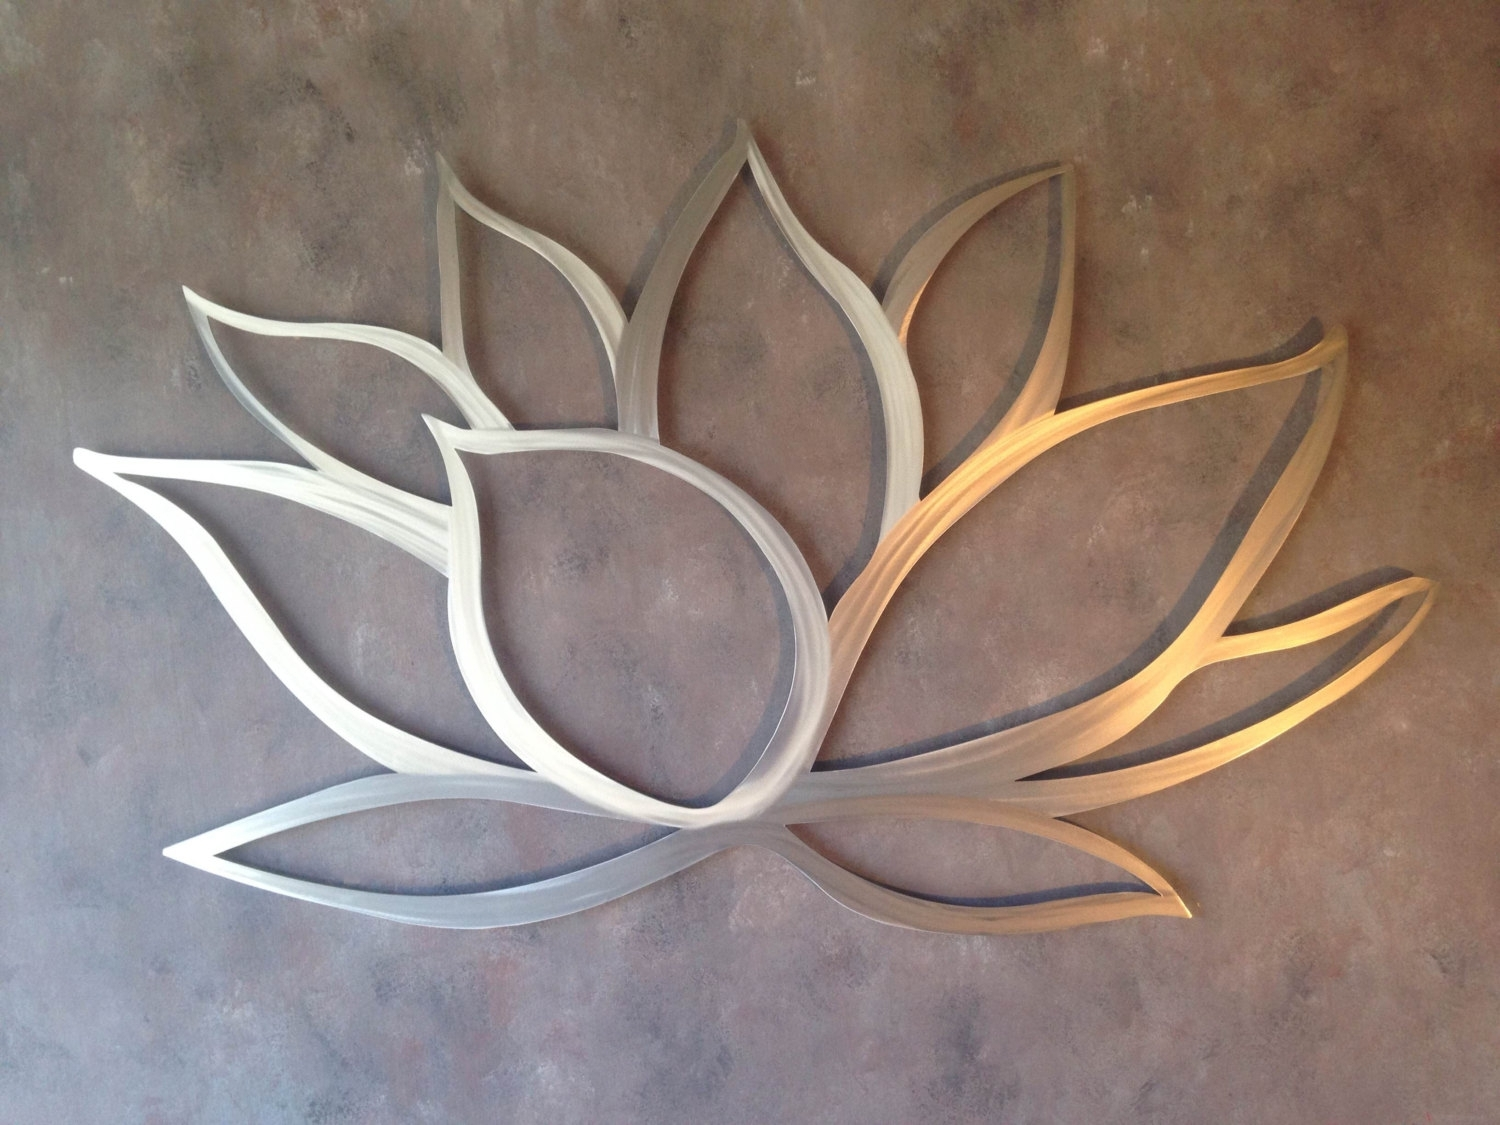 Outdoor Metal Wall Art Design Ideas | Sorrentos Bistro Home Intended For 2017 Abstract Flower Metal Wall Art (View 13 of 20)